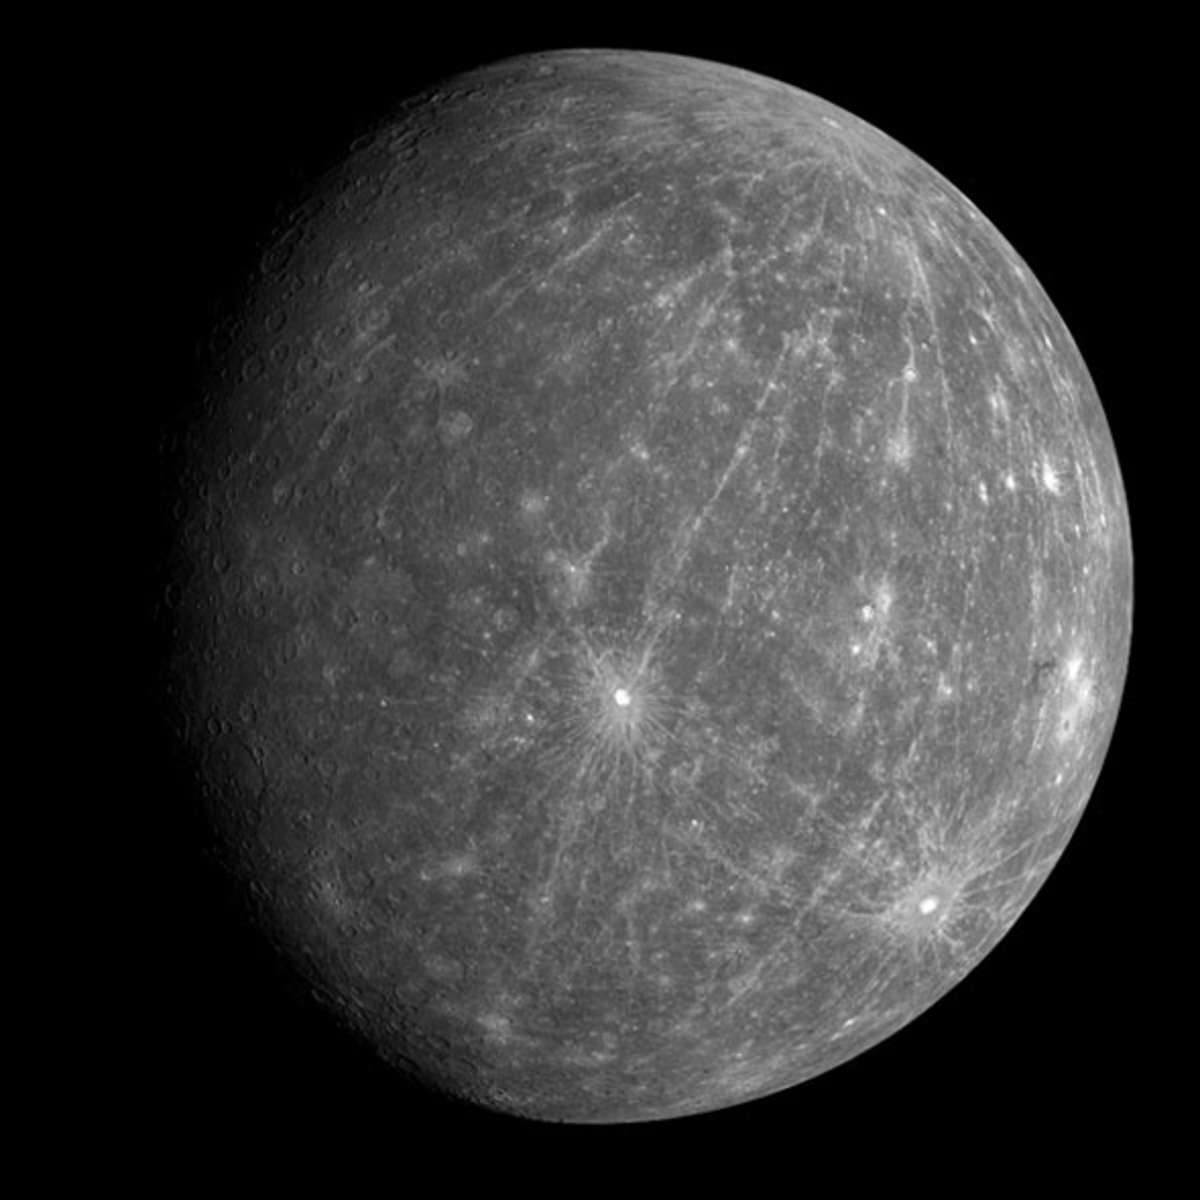 mercury_watermelon_590_0.jpg